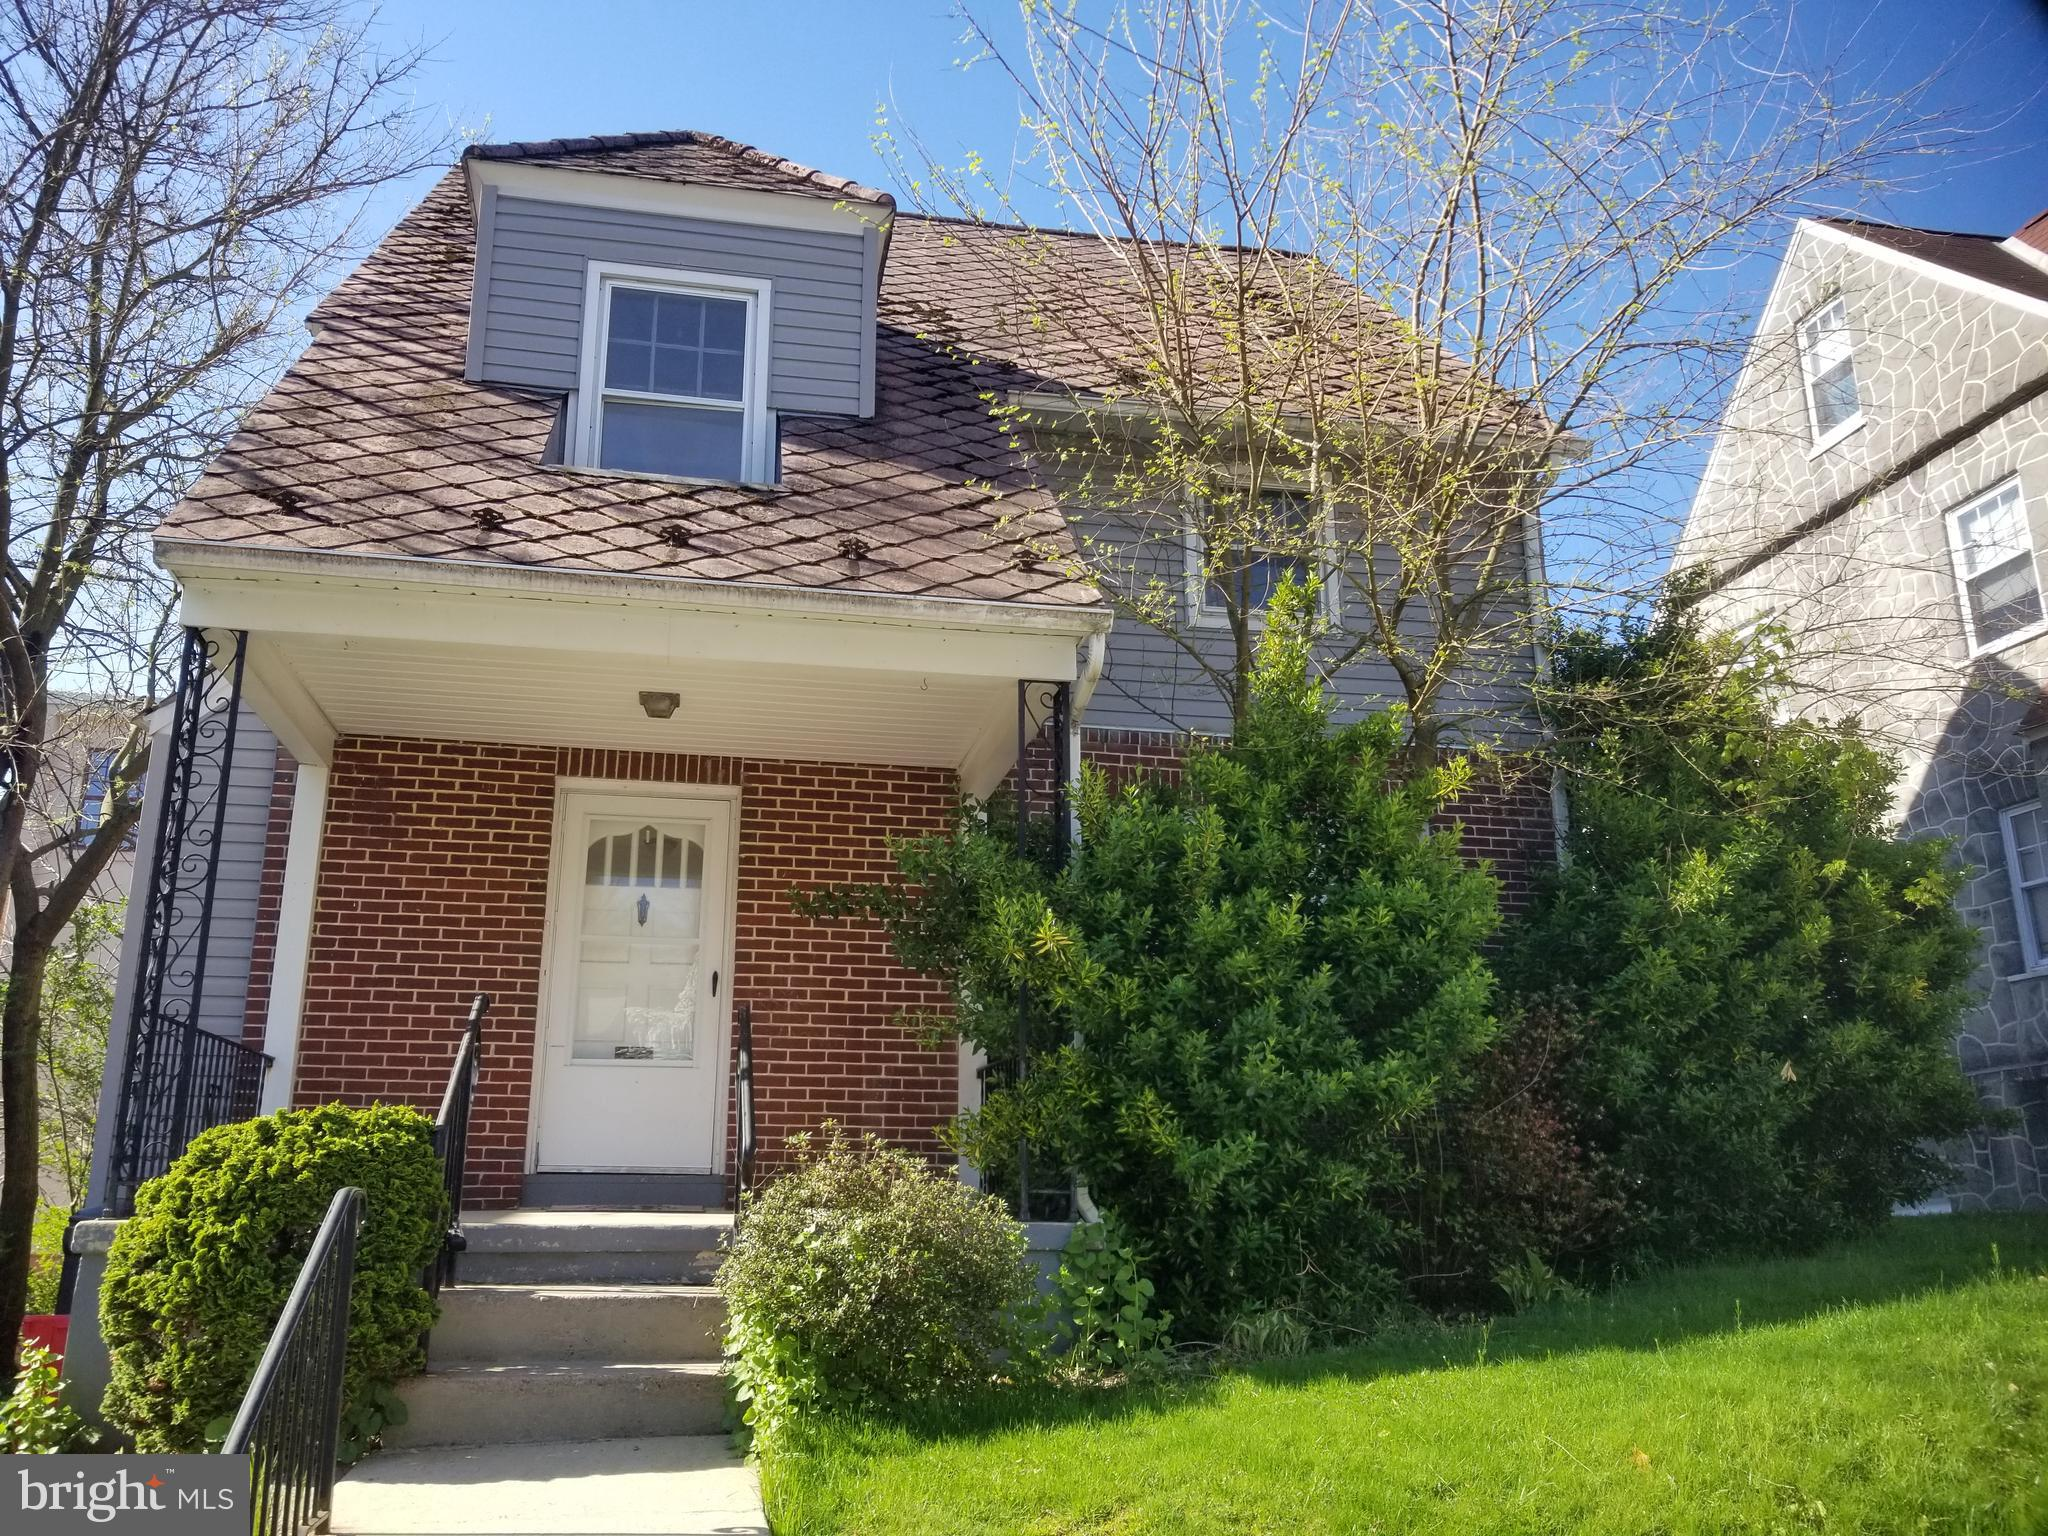 Classic 3-4 bedroom two story, freshly painted interior, hardwood floors, front and rear porches,off street parking. Quick possession. $129,900